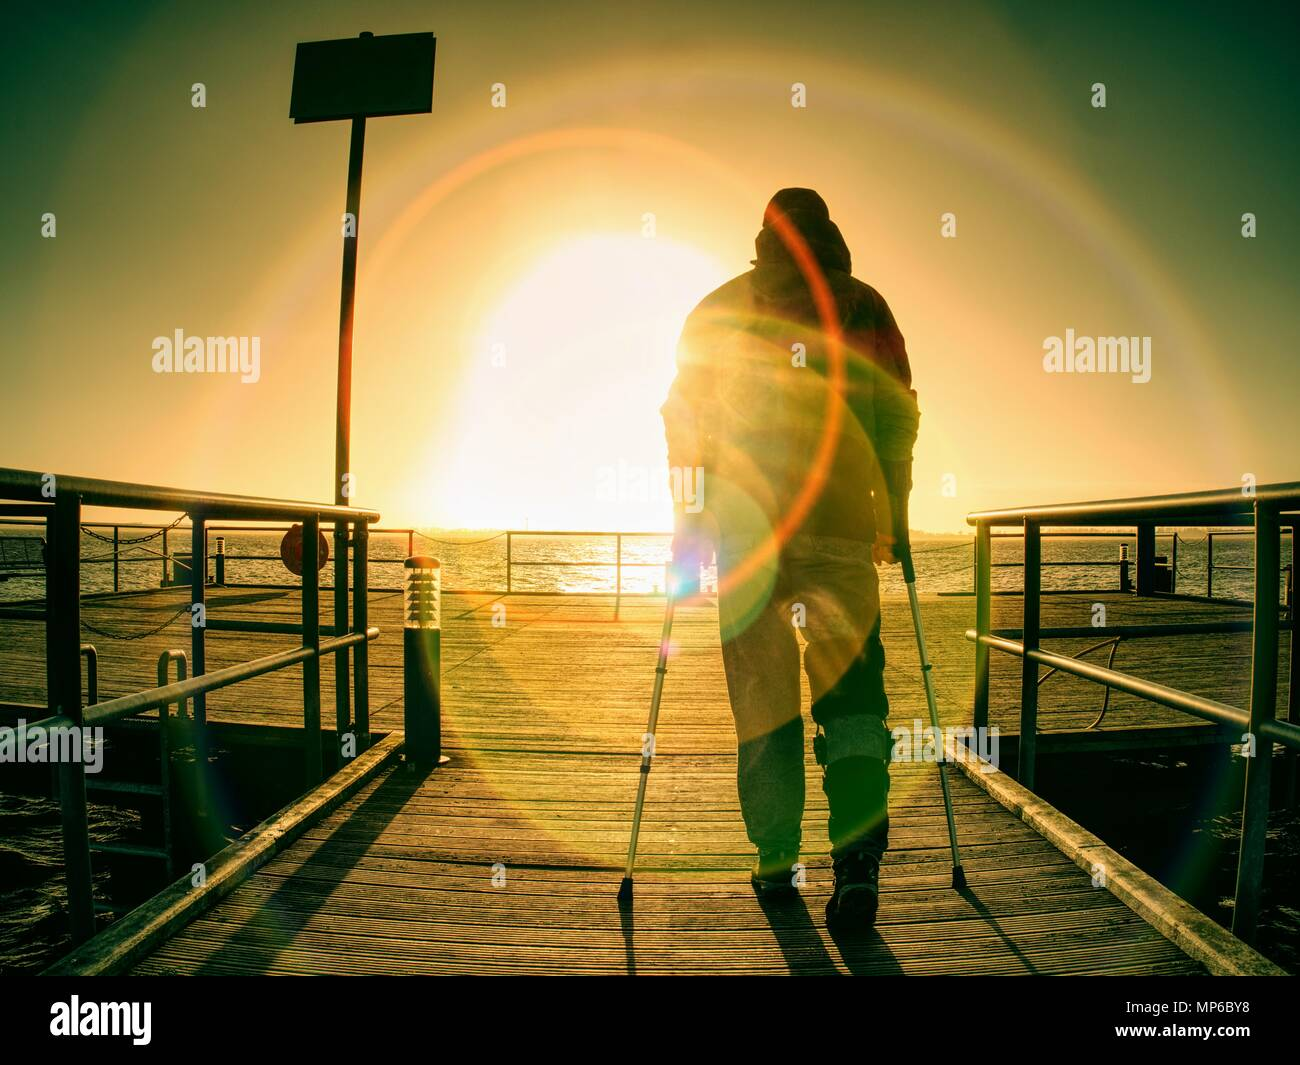 Gloomy nostalgic silhouette of sad lonely melancholic adult man with hooded jacket standing on lake bridge within  early morning and thinking - Stock Image